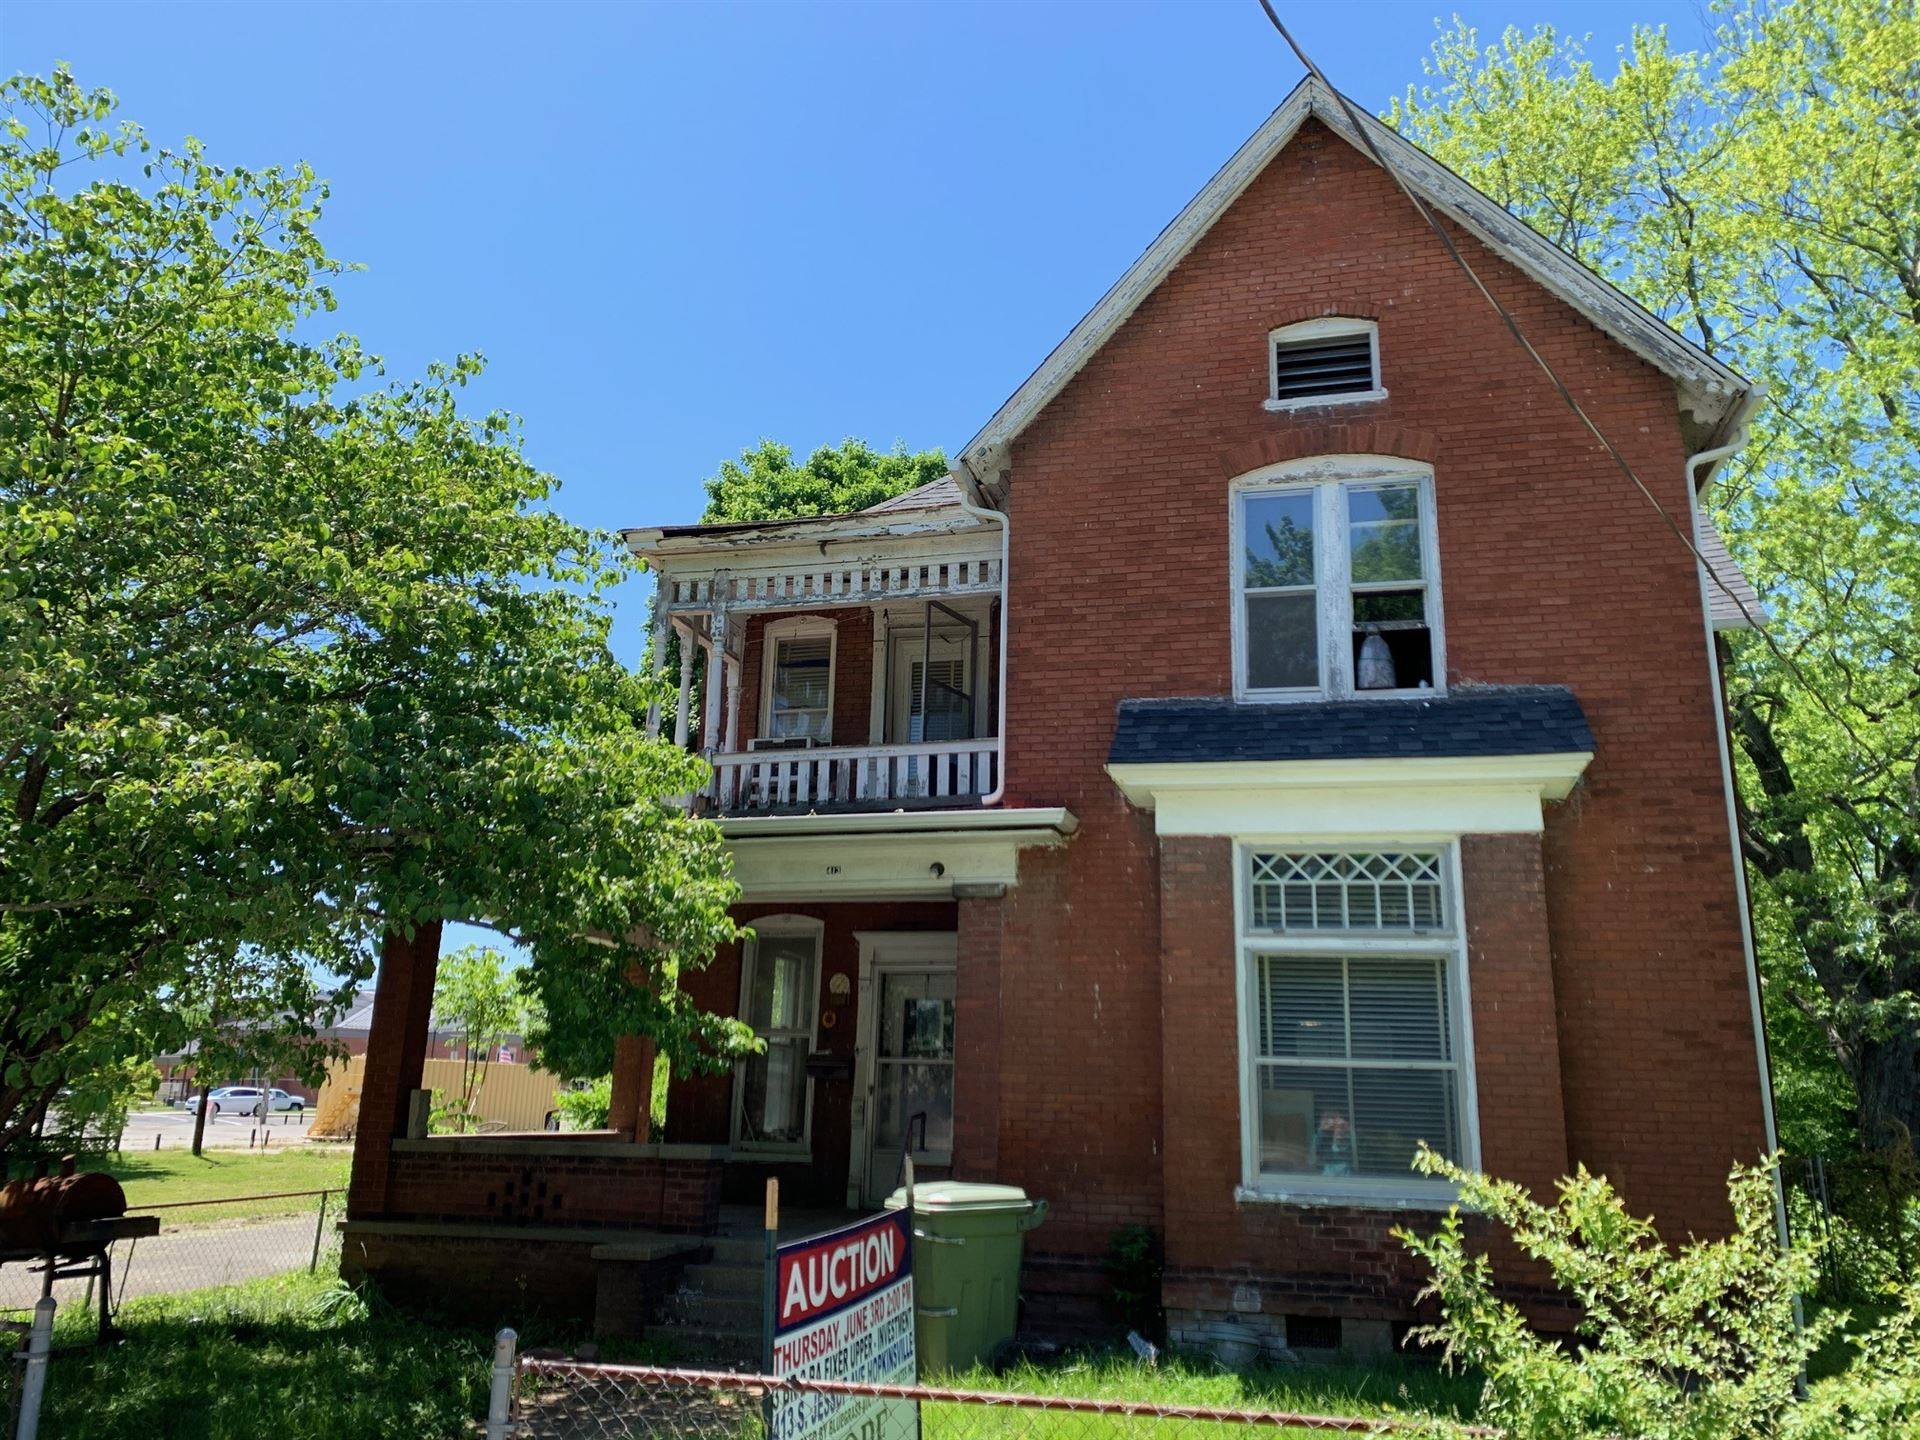 413 S Jessup Ave, Hopkinsville, KY 42240 - MLS#: 2253409